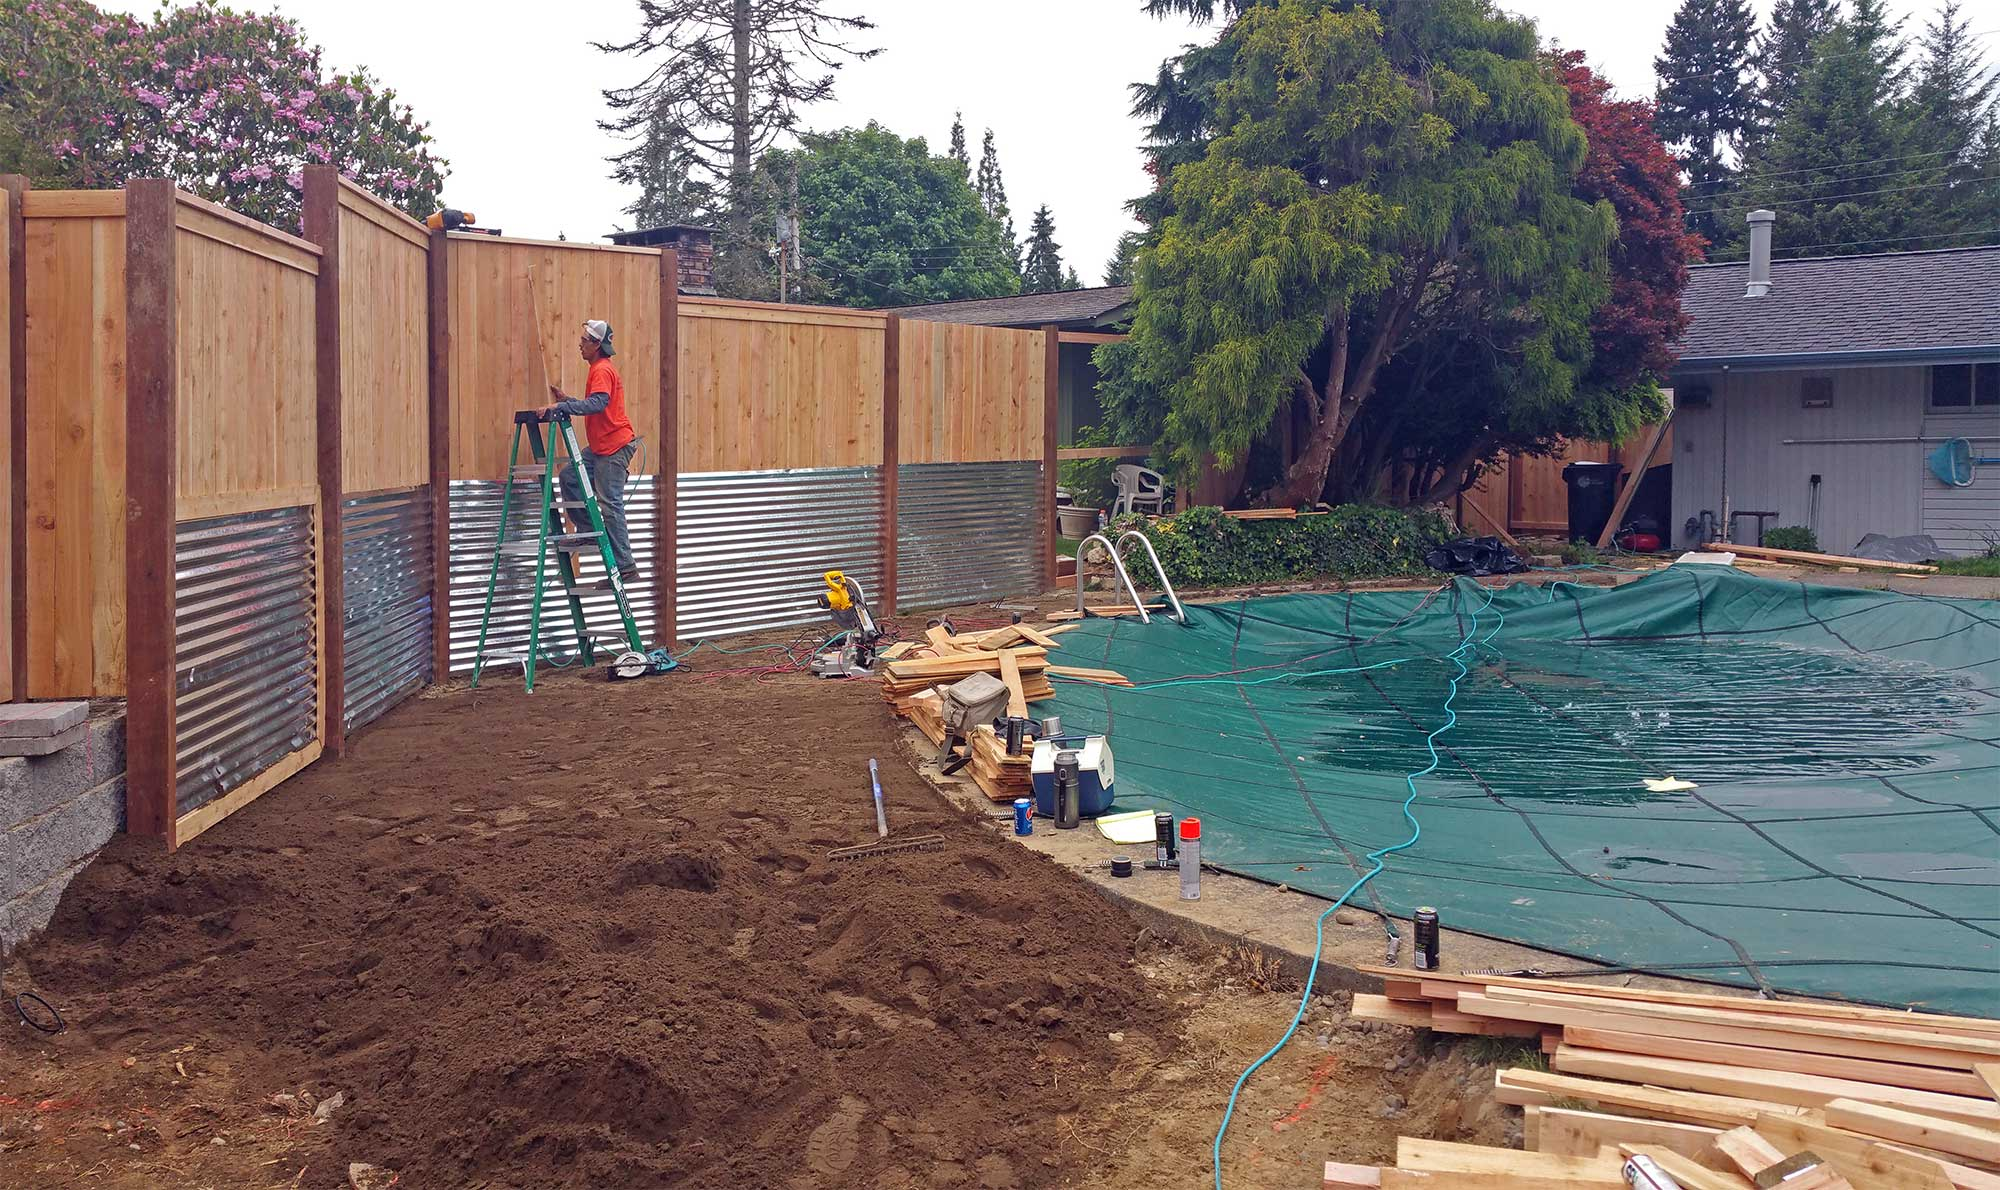 Pool Privacy Fence south olympia poolside transformation - ajb landscaping & fence